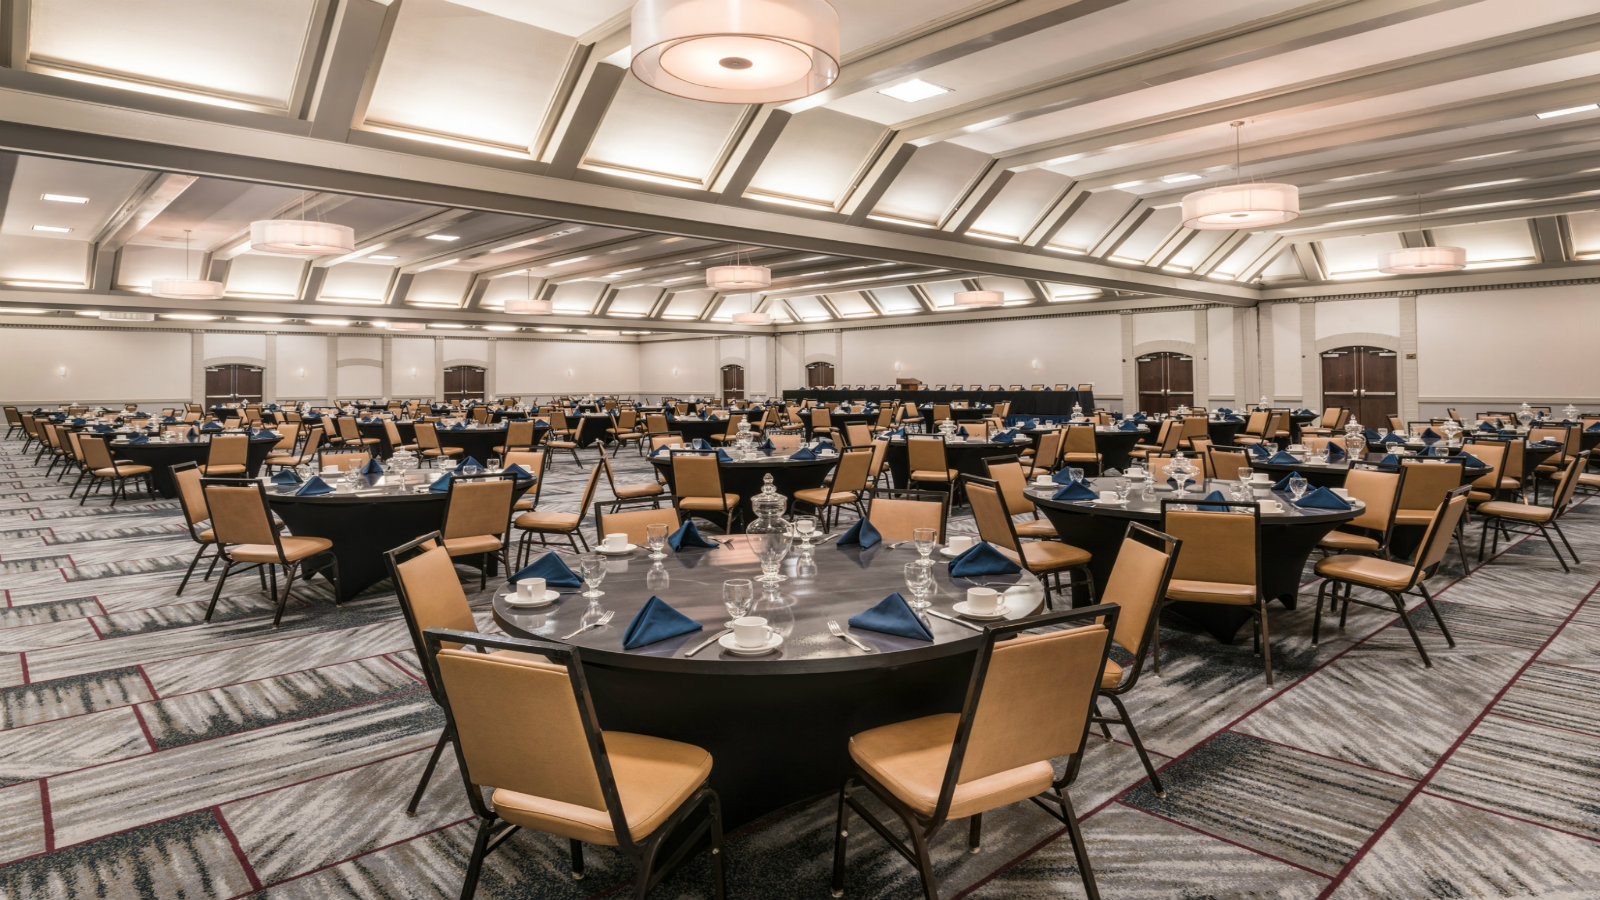 Meeting Rooms in Salt Lake City - Ballroom